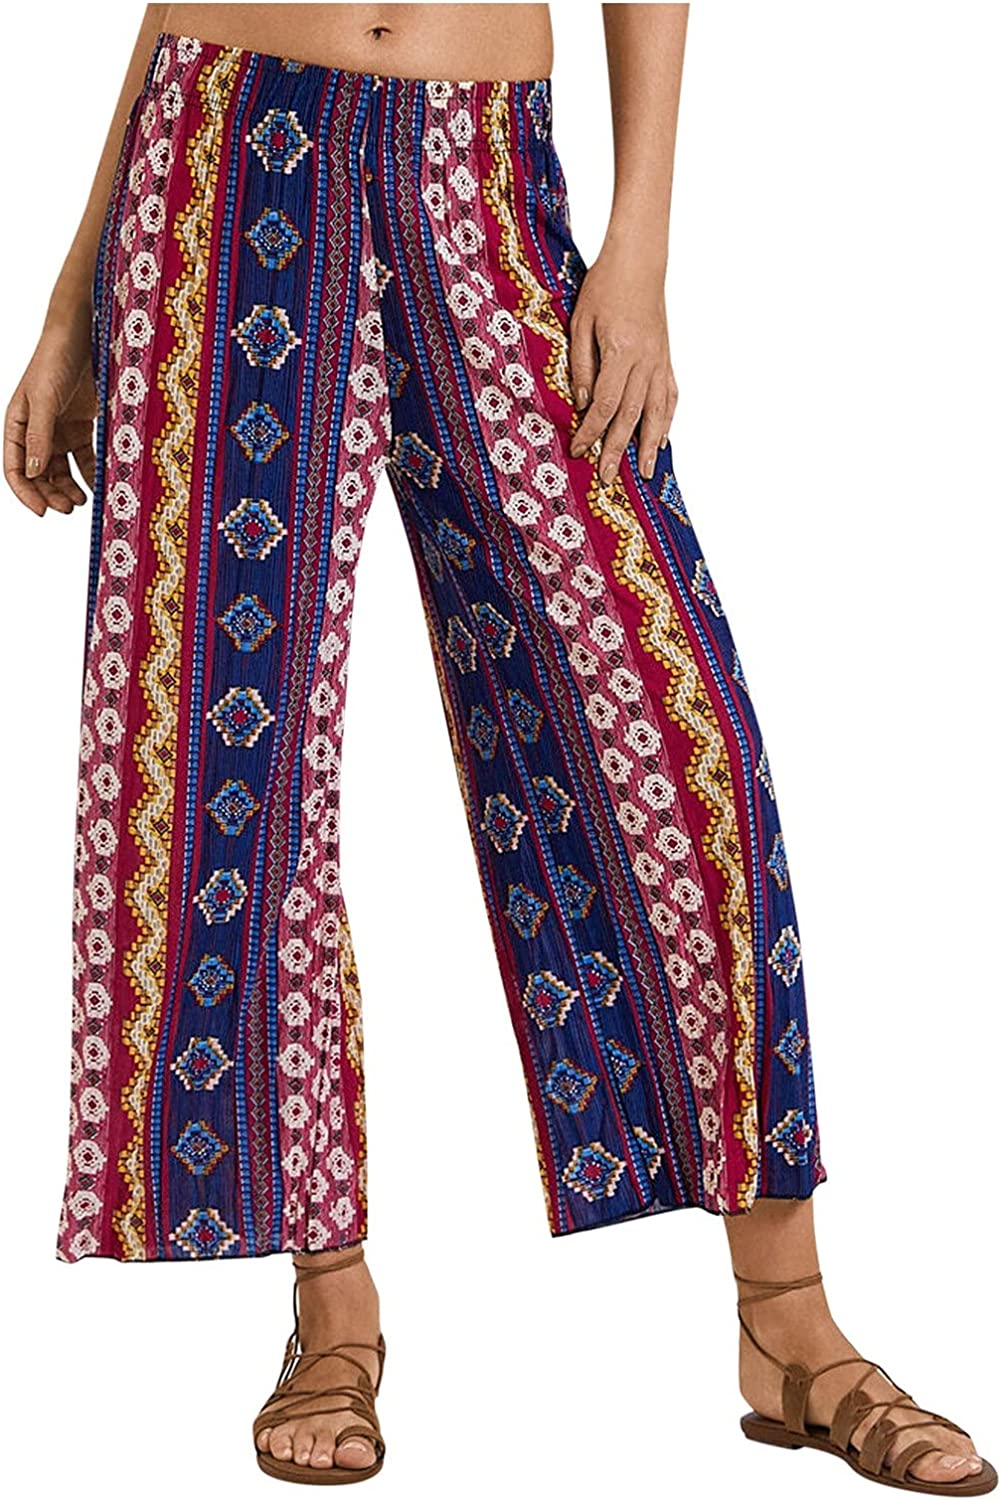 LINGERY Women's High Waist Loose Striped Printed Wide Leg Pants Casual Trousers GL-1